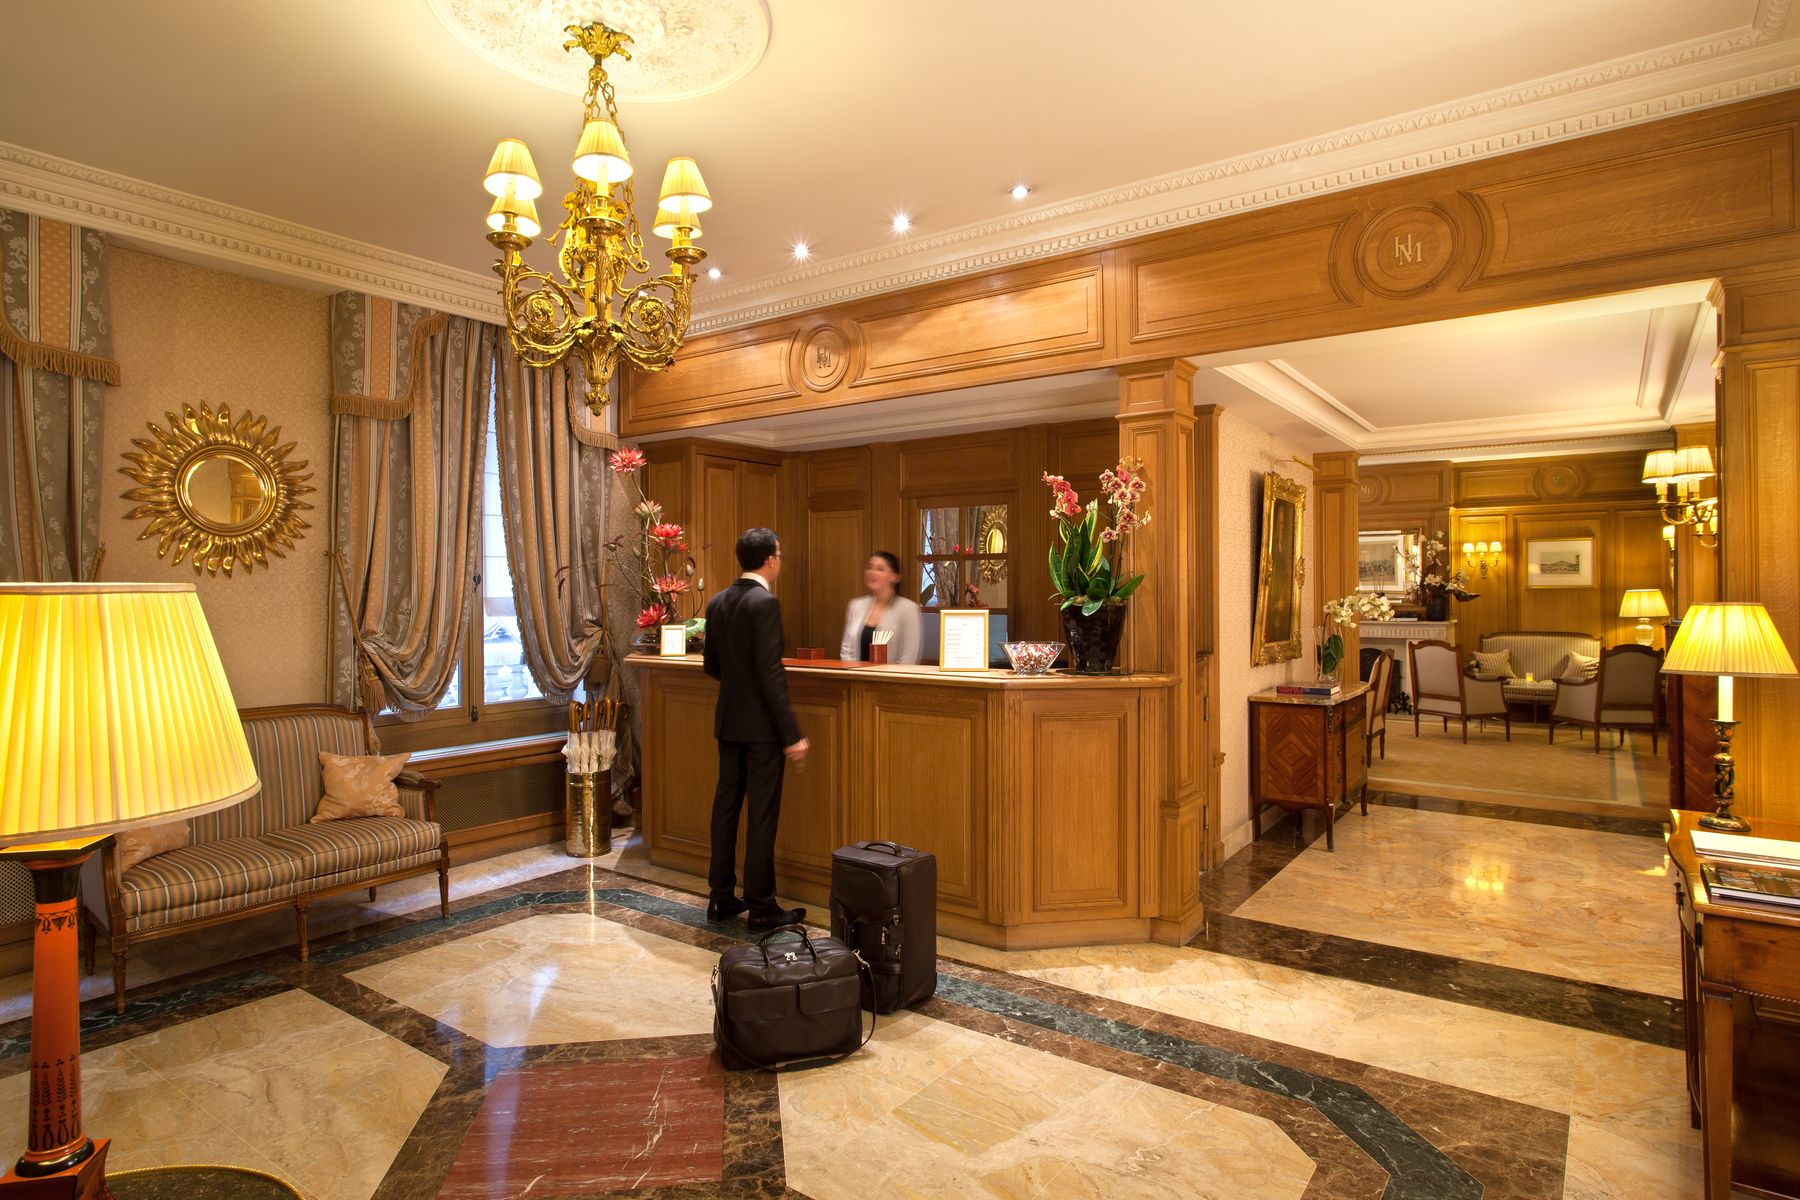 378/Accueil/Hotel_Mayfair_Paris_Front_Office_1_resultat.jpg